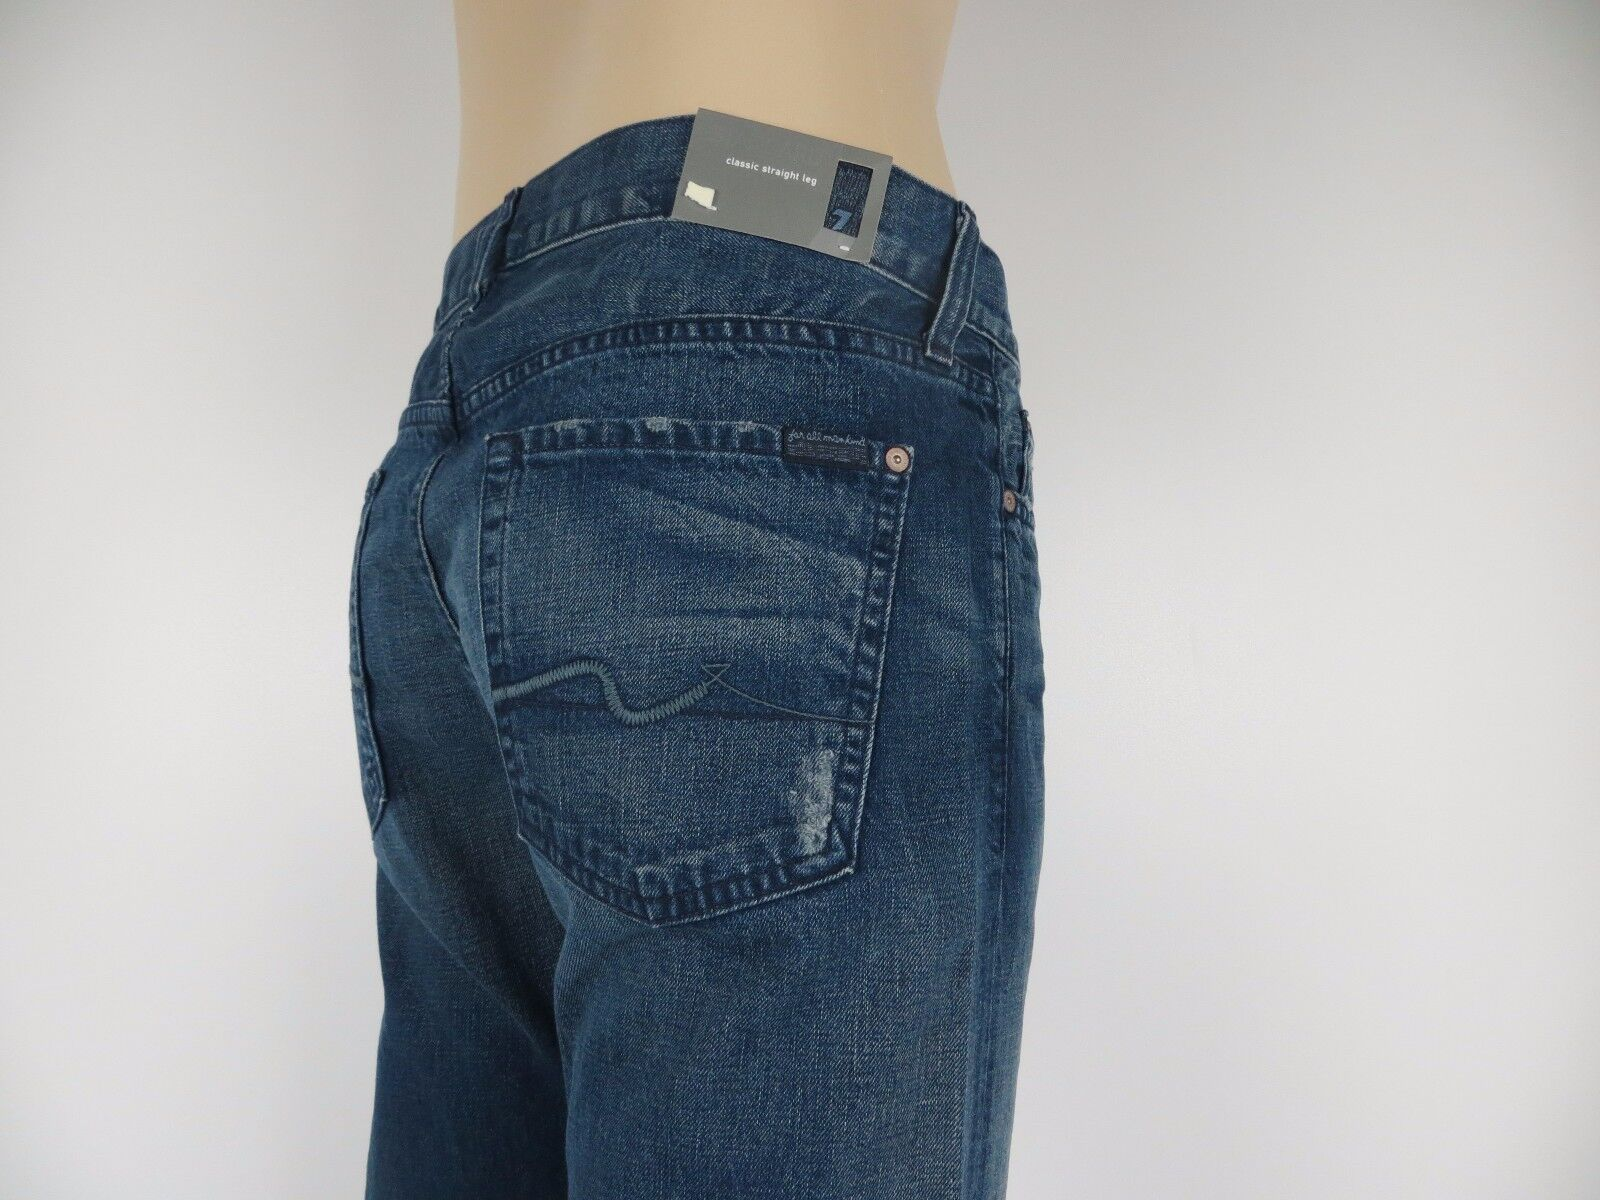 NWT 7 Seven For All Mankind, Men's Jeans, Standard, Straight Leg, PRSN, Size 31